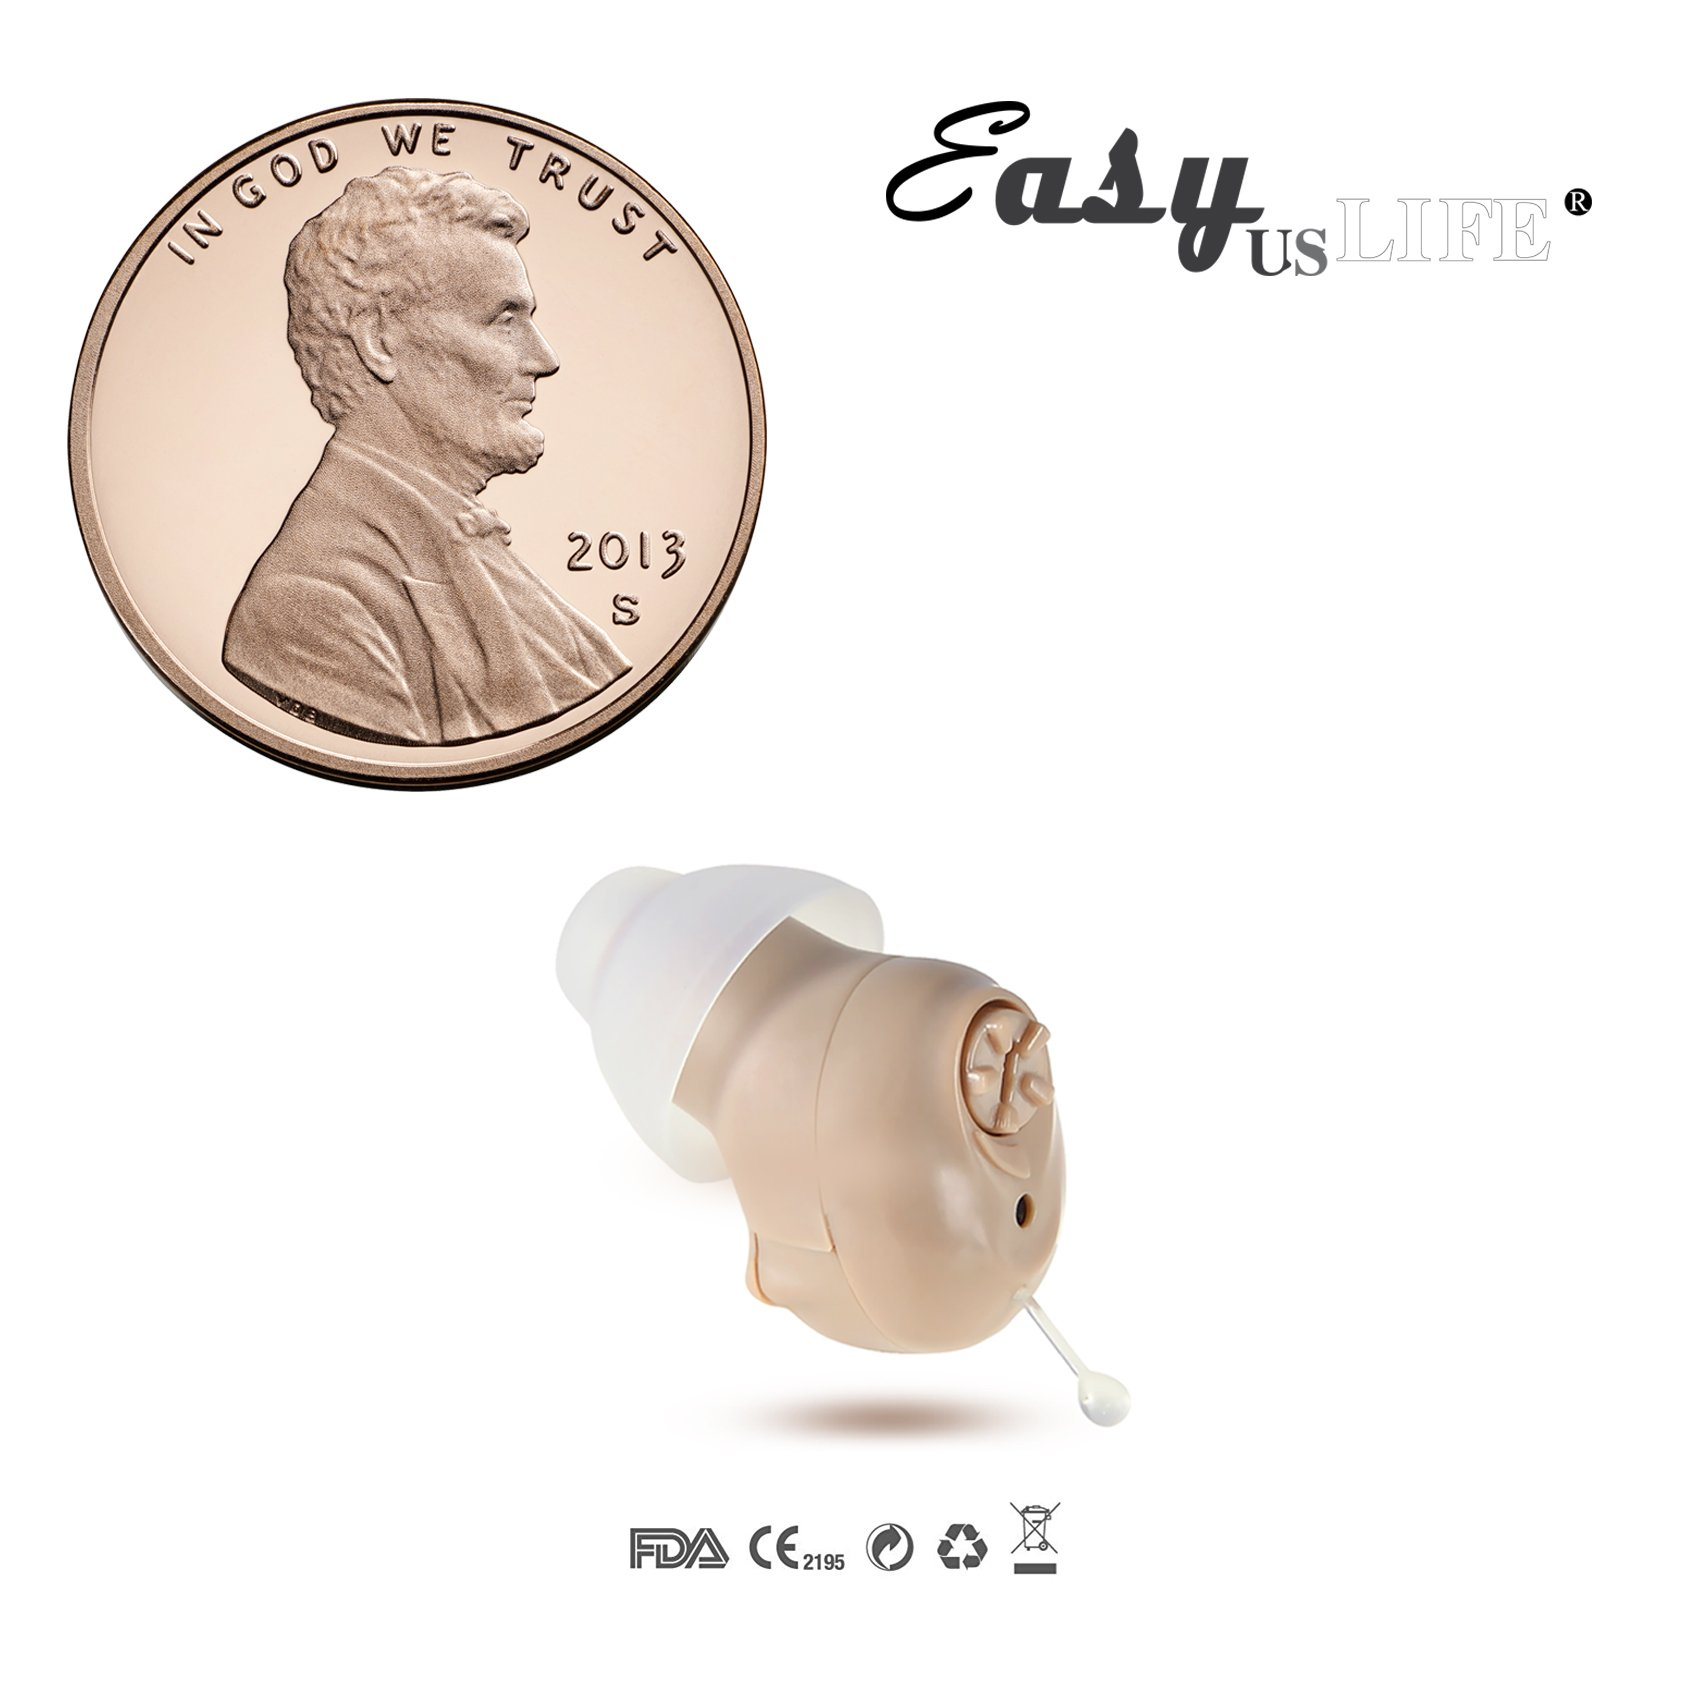 Tiny Size,Beige Color,in-The-Canal (ITC), New Digital Hearing Amplifier, Clearly Technology, Interchangeable, Suitable for Men and Women, Trademark: Easyuslife